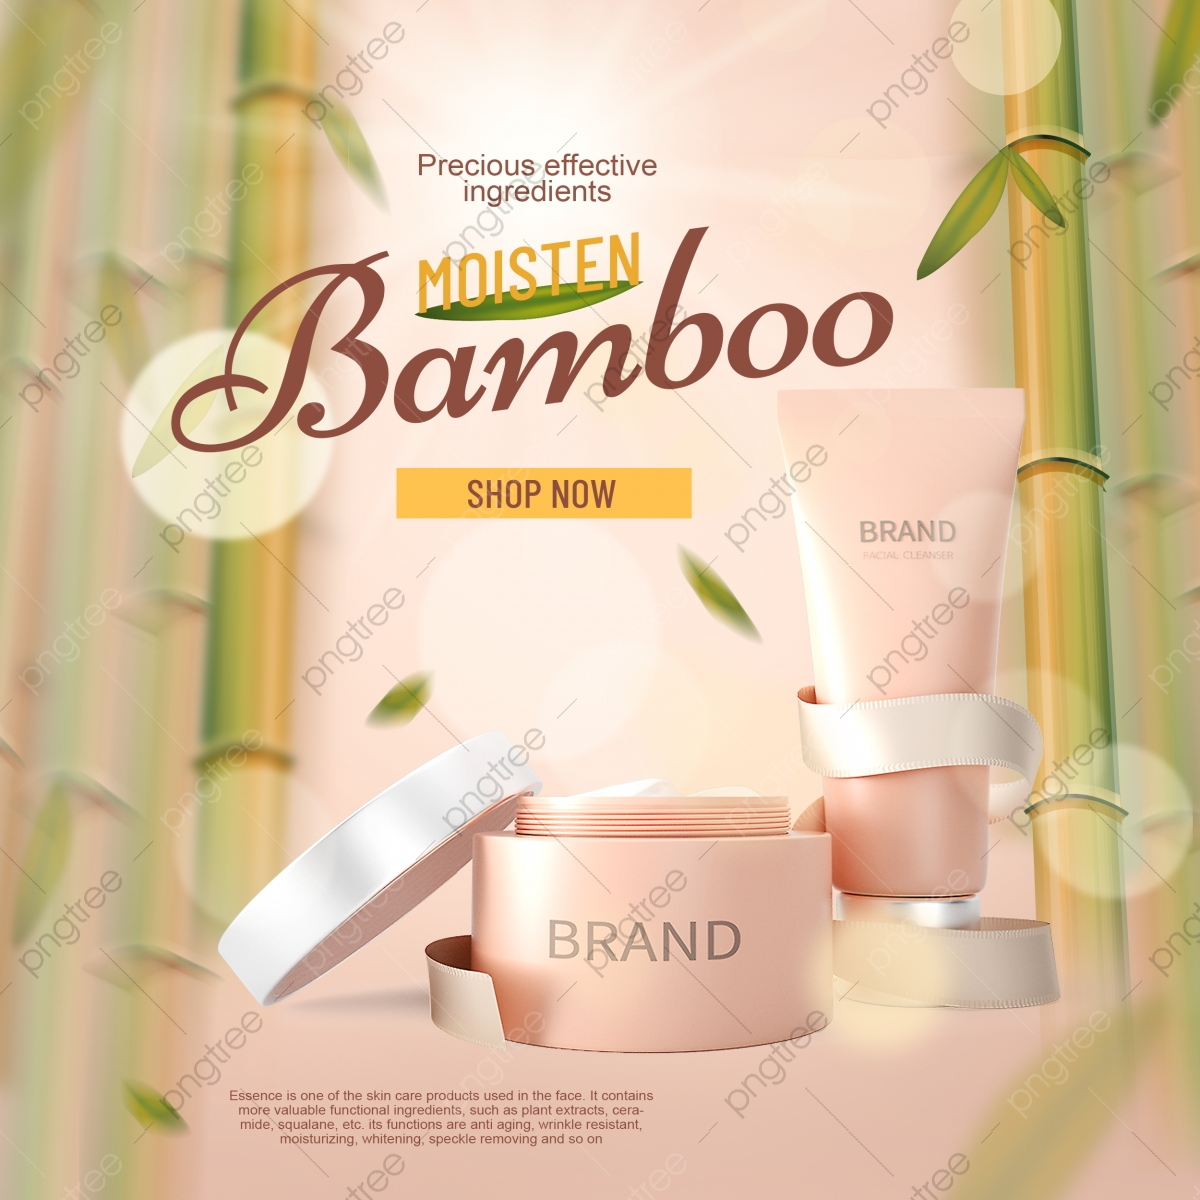 Bamboo Leaf Skin Care Promotion Banner Template For Free Download On Pngtree